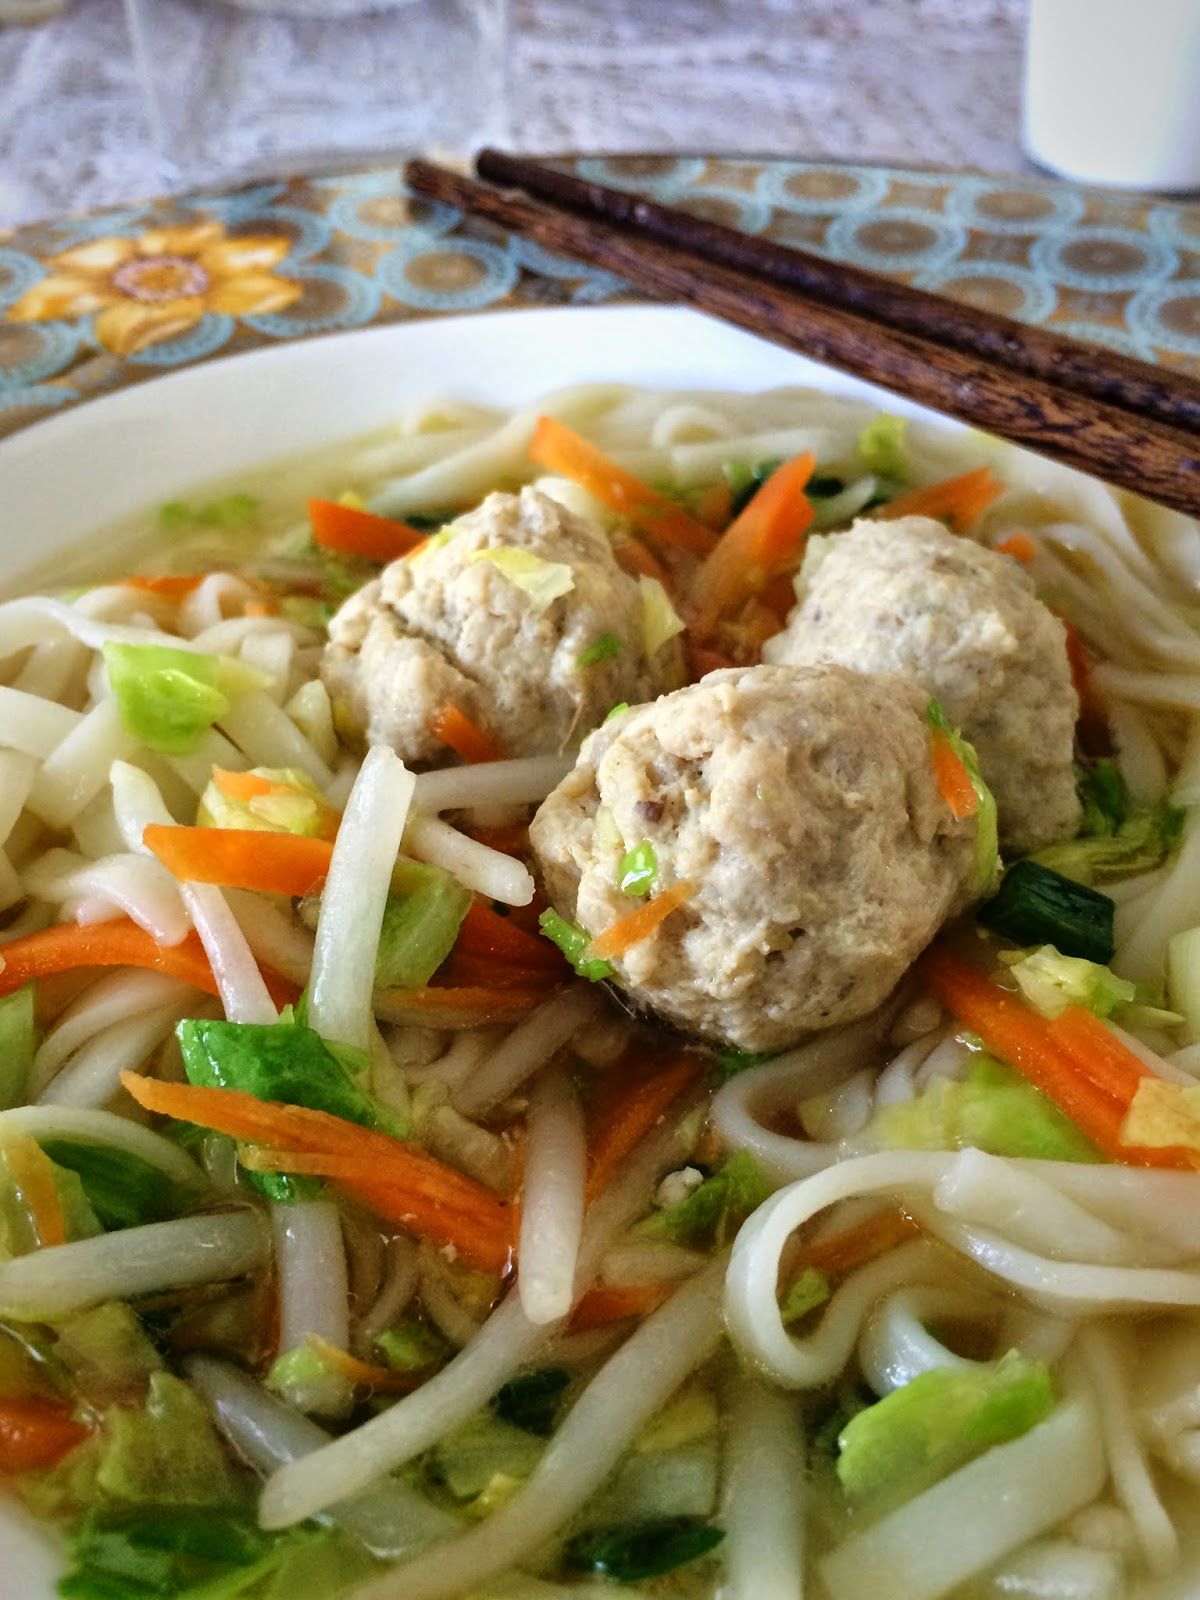 Chicken meatball noodle soup nudler